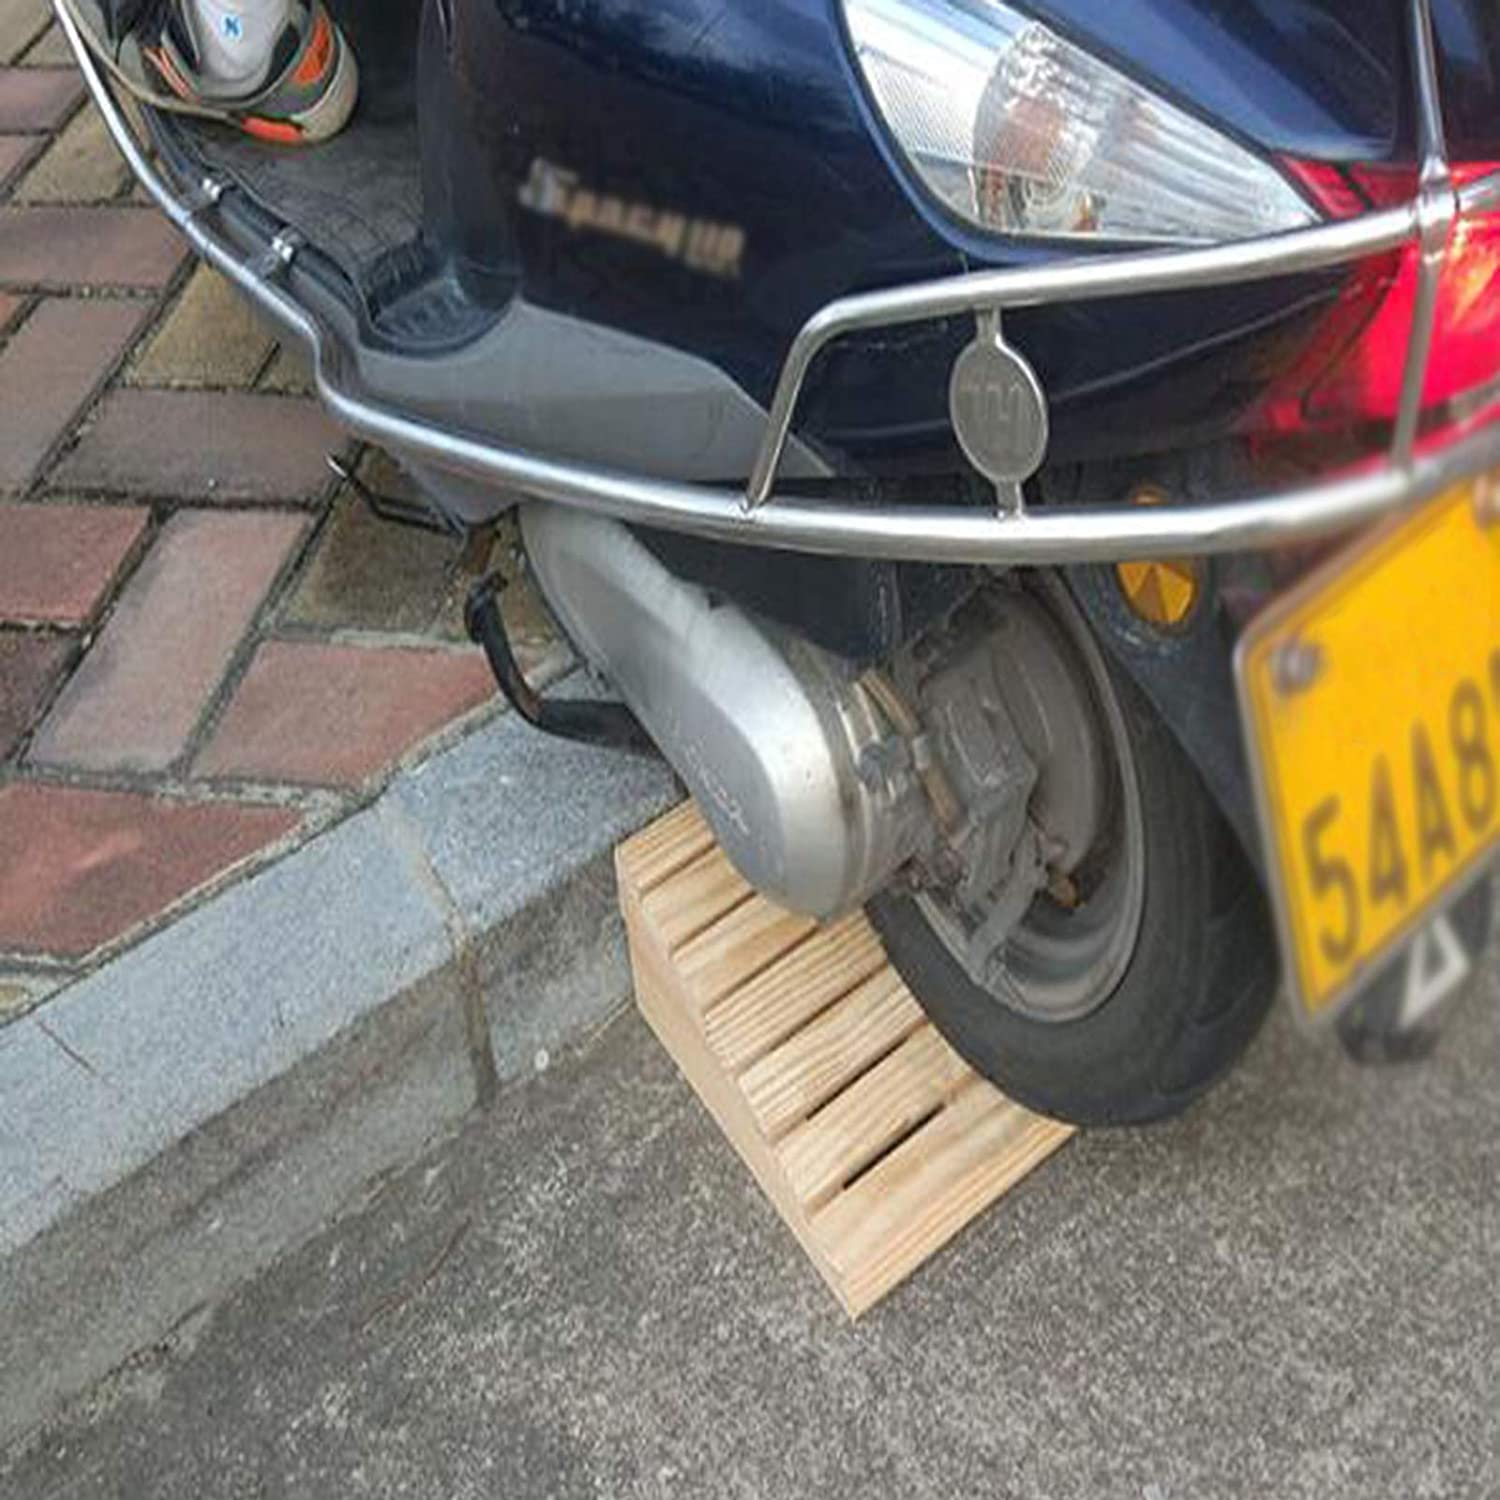 YSML Wood Steps Ramps Popular product Slope Portable for Very popular Pad Motorcycles Thresh